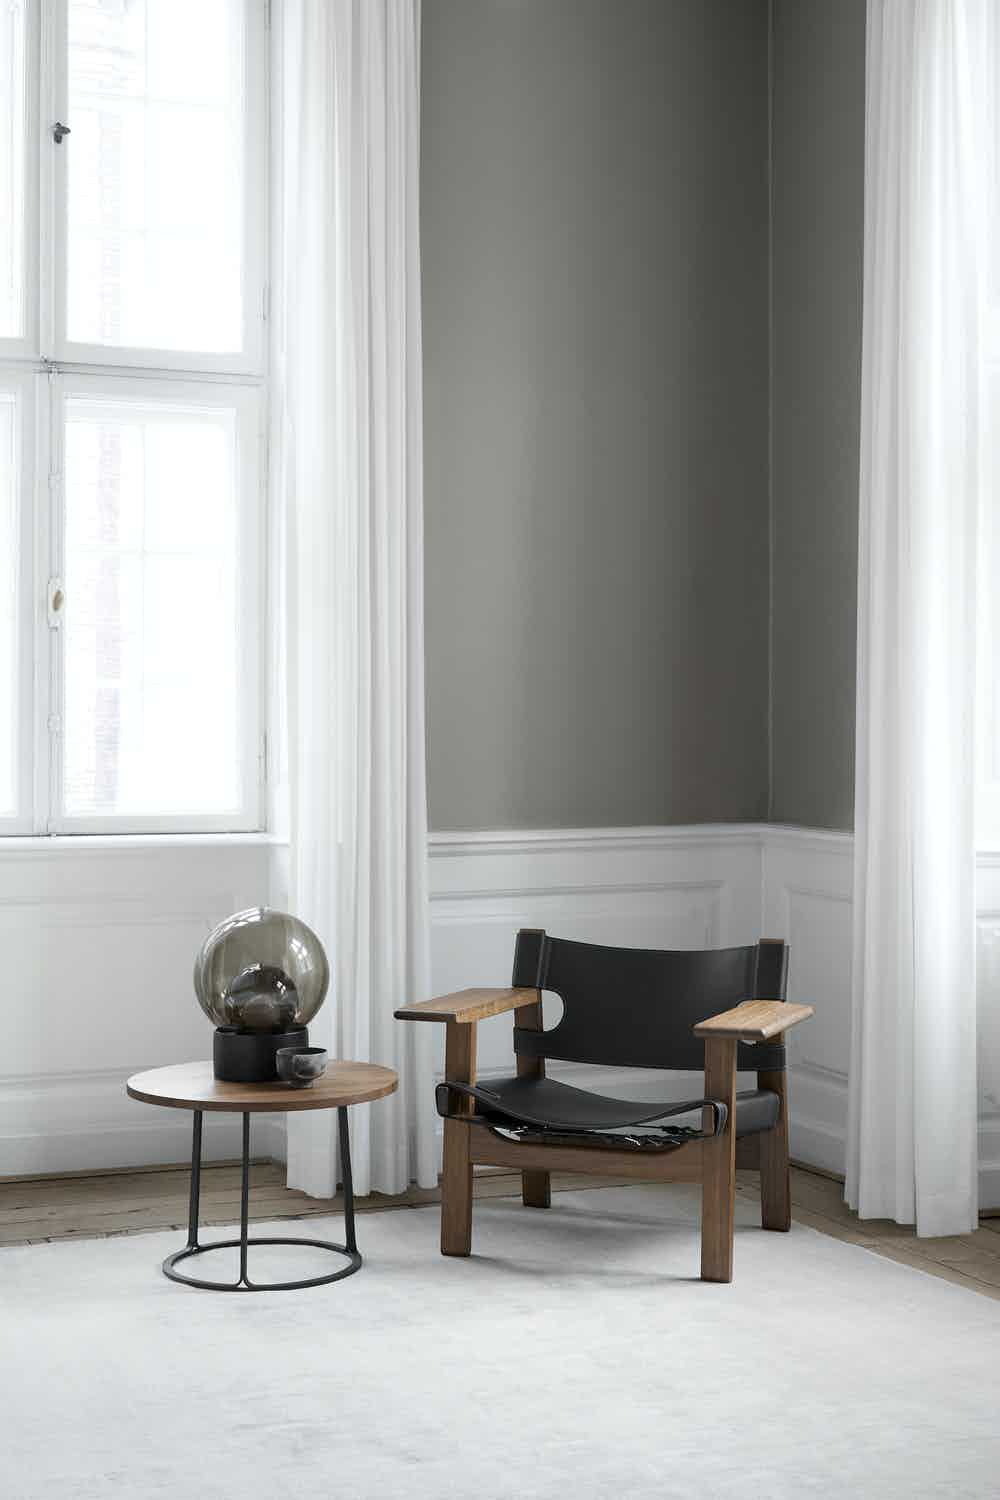 Fredericia furniture the spanish chair black insitu haute living